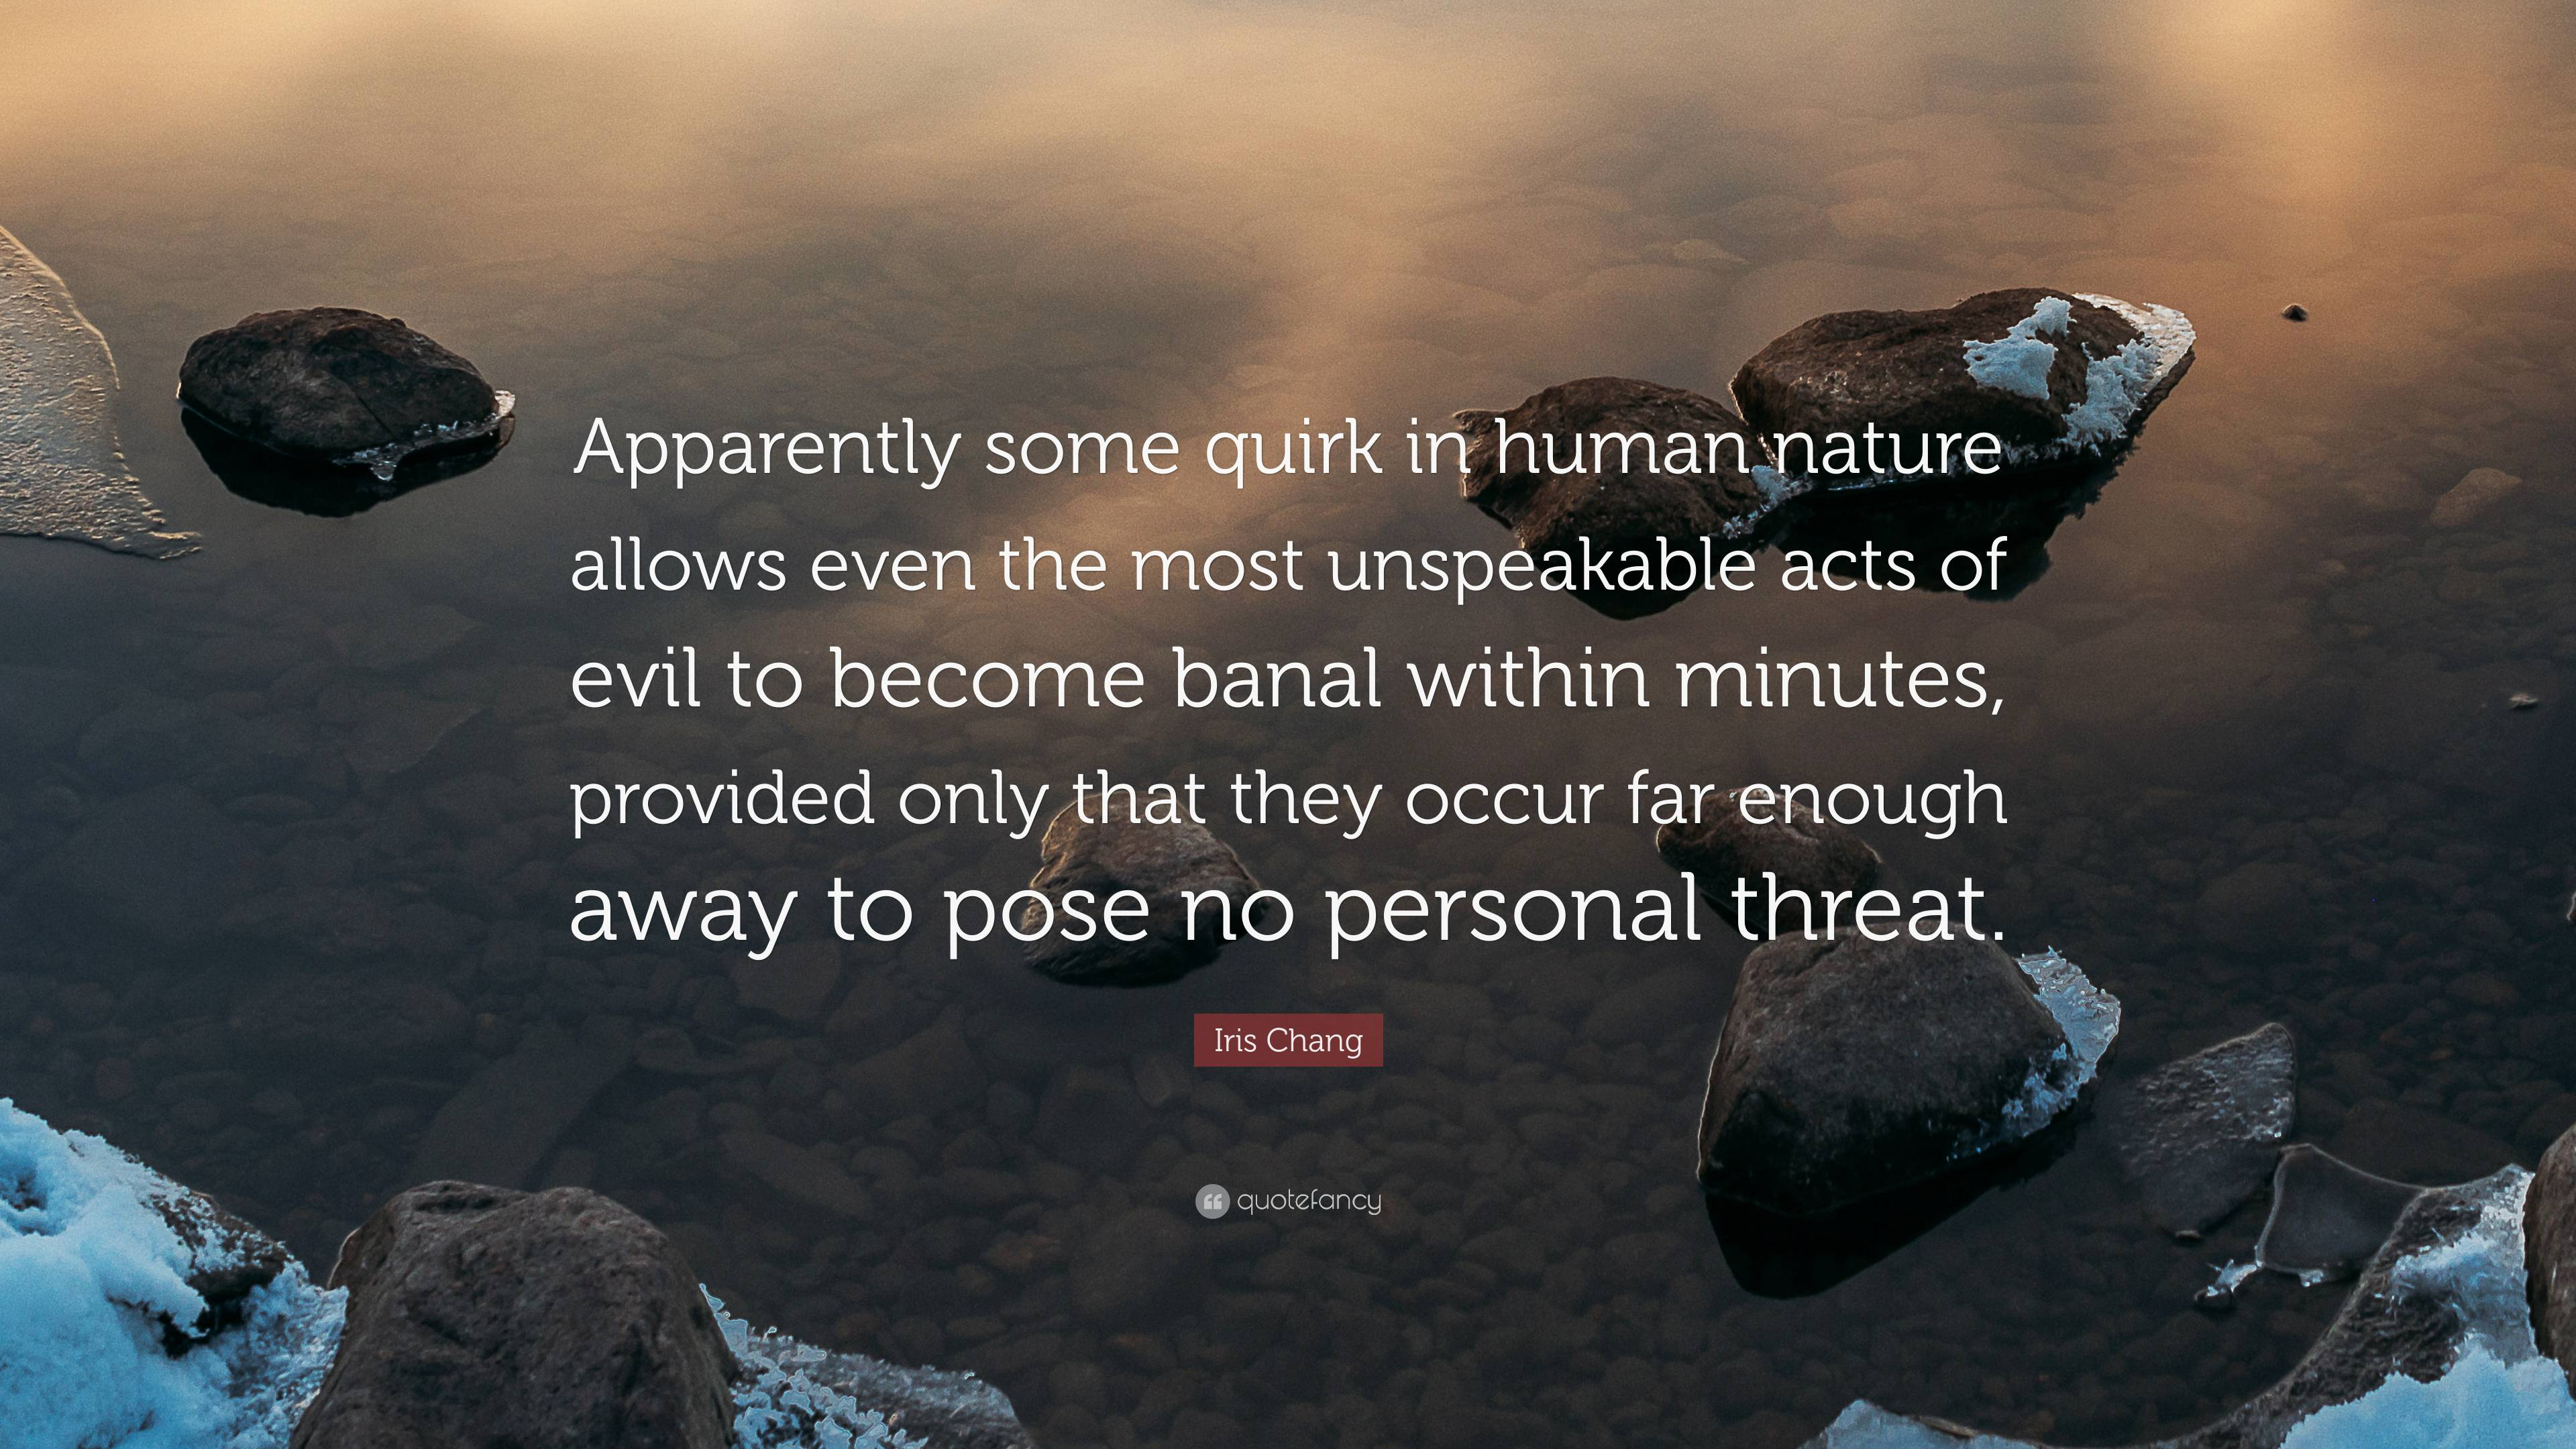 """Iris Chang Quote: """"Apparently some quirk in human nature allows even the  most unspeakable acts of evil to become banal within minutes, prov..."""""""